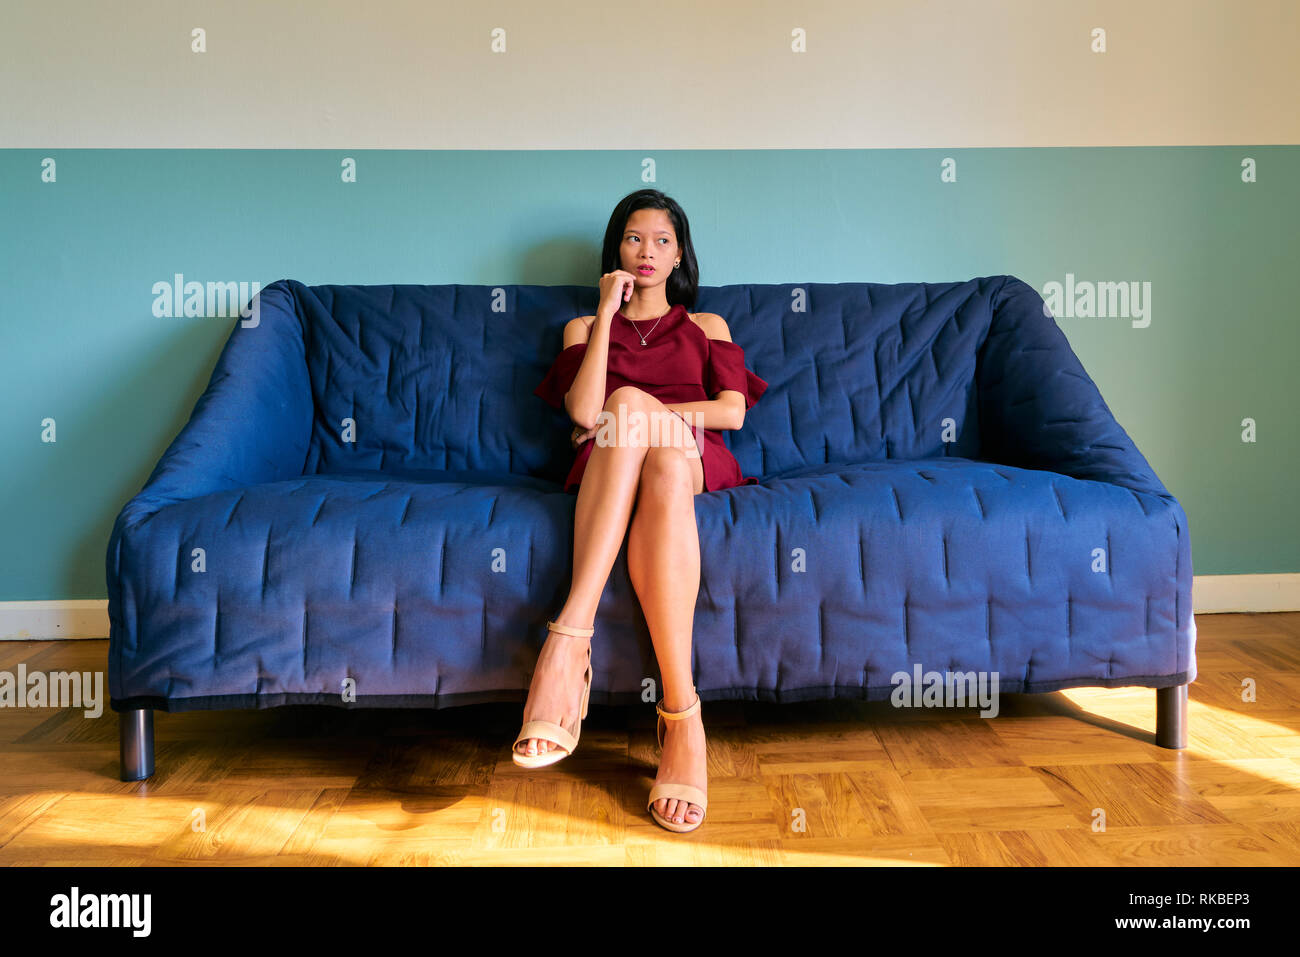 Beautiful woman posing - relaxing young woman thinking about hard decision - Stock Image